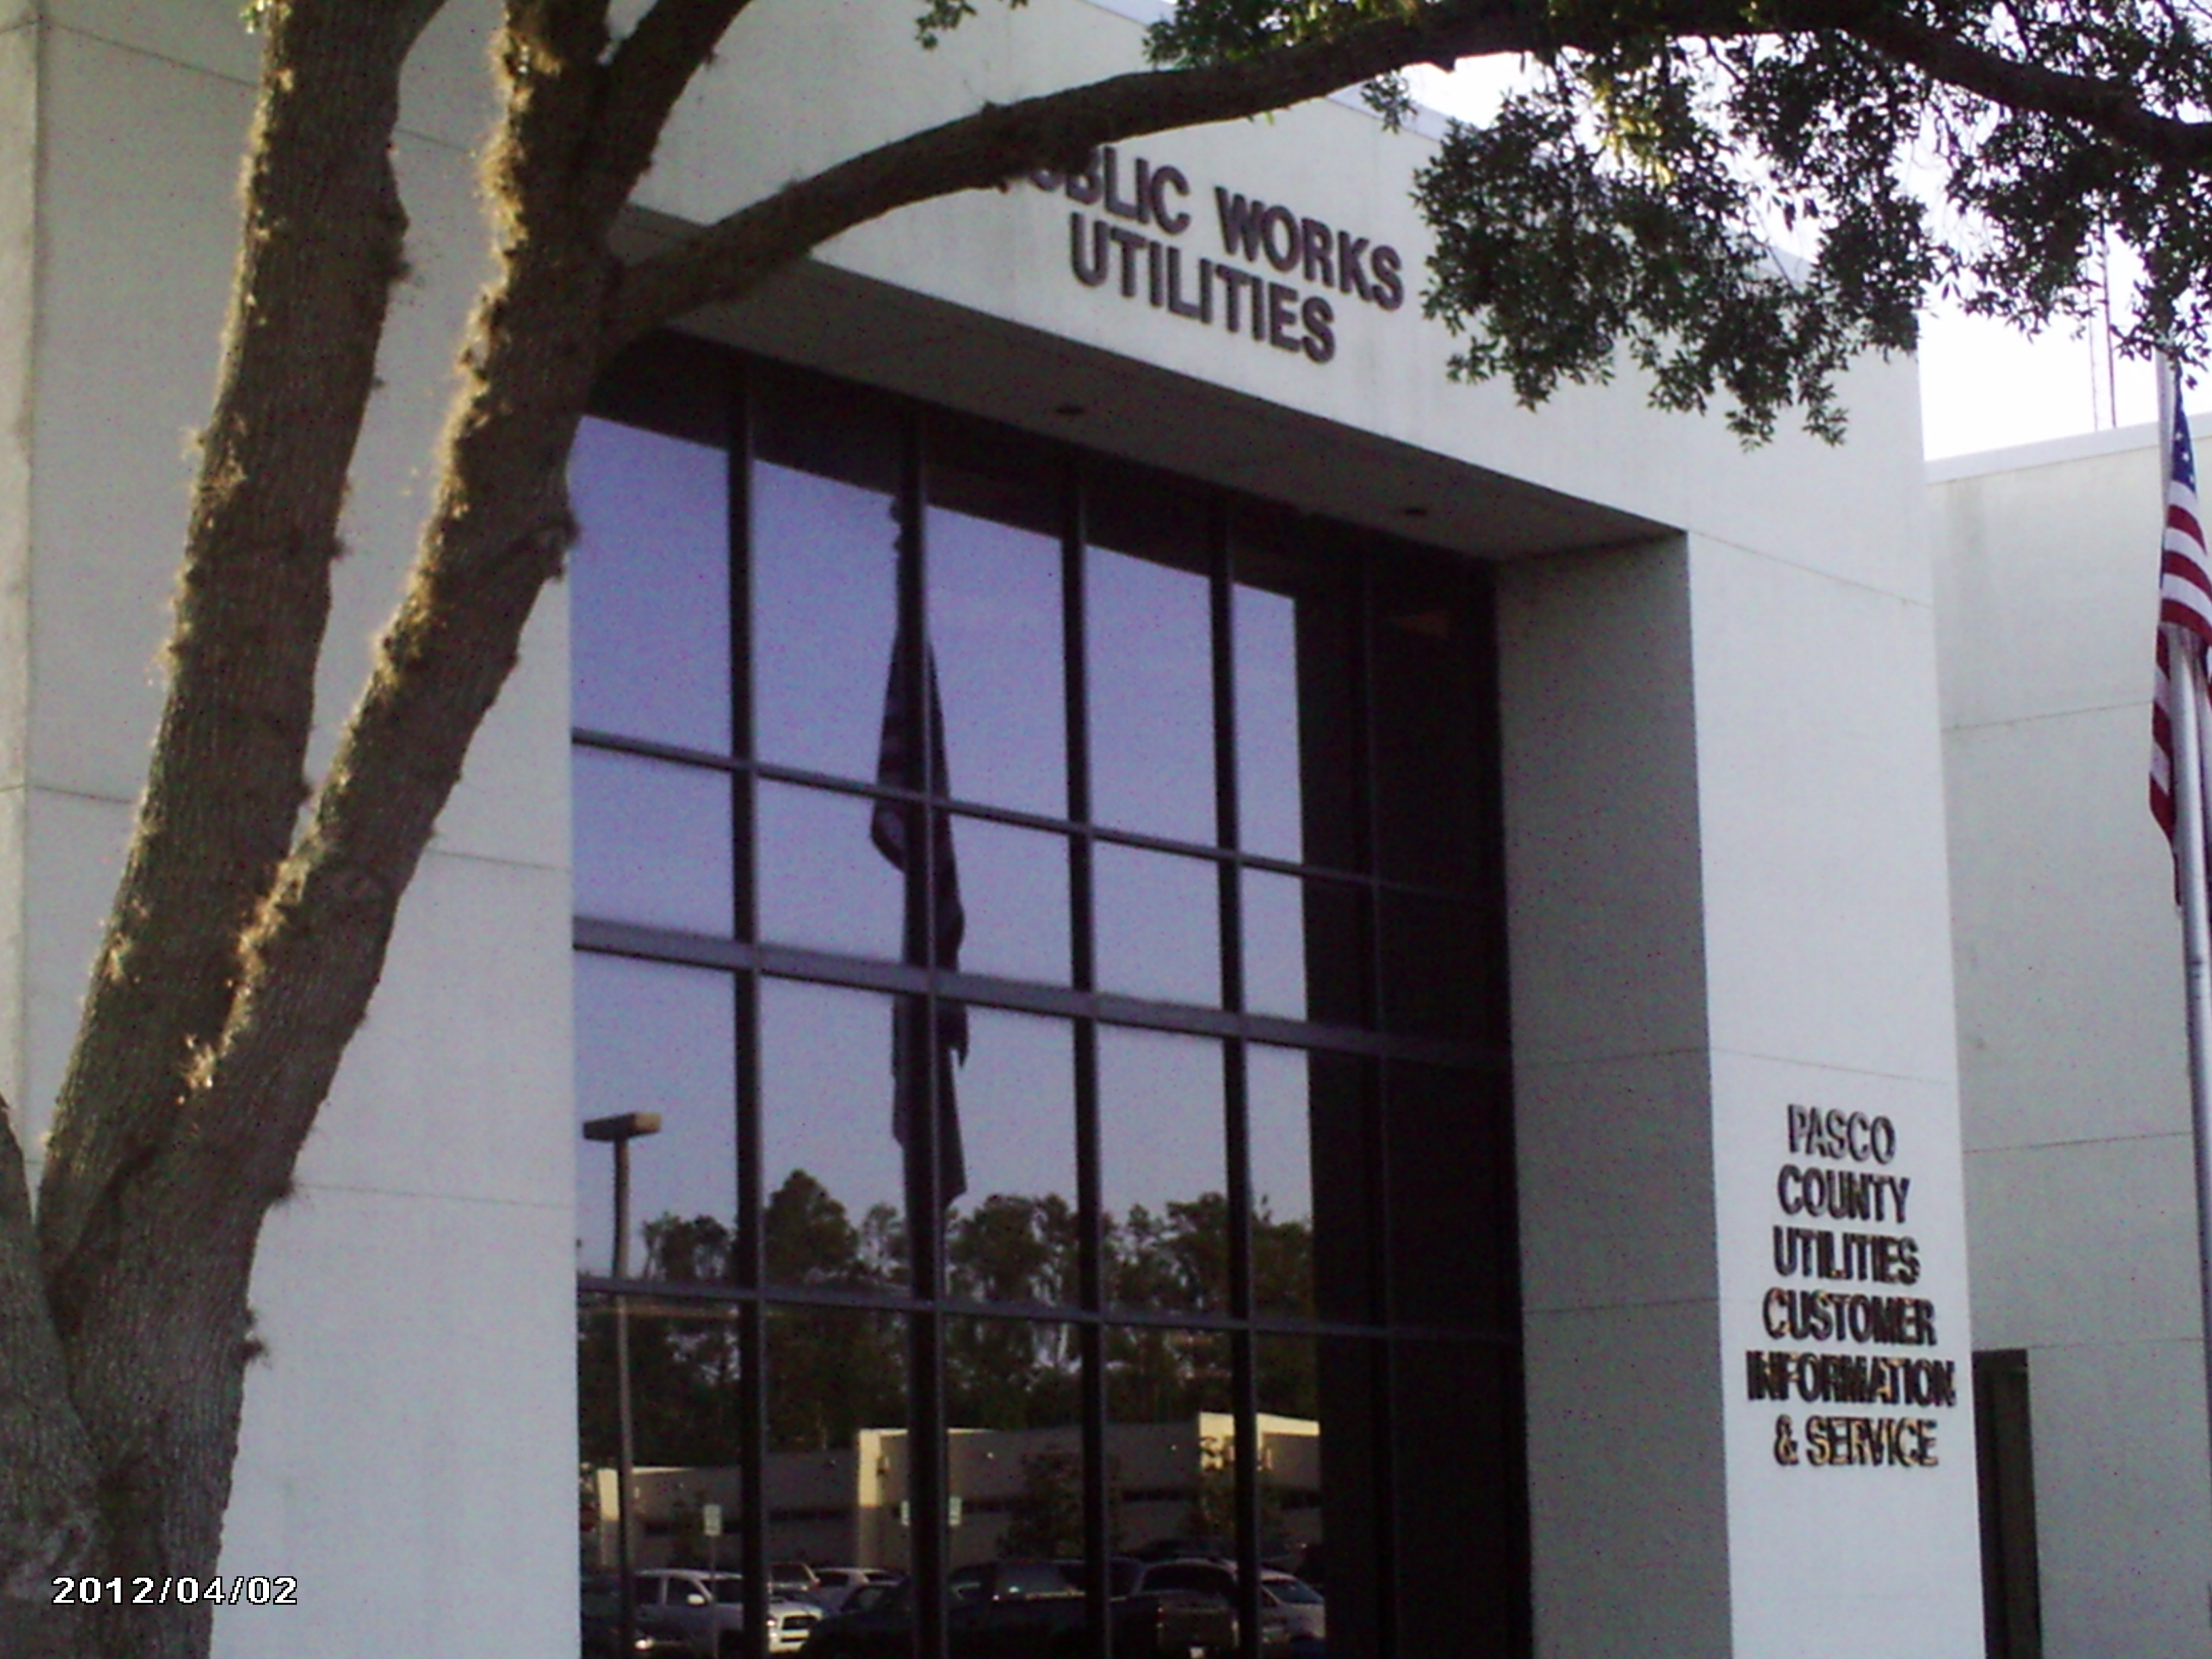 Utilities Customer Information and Services Building